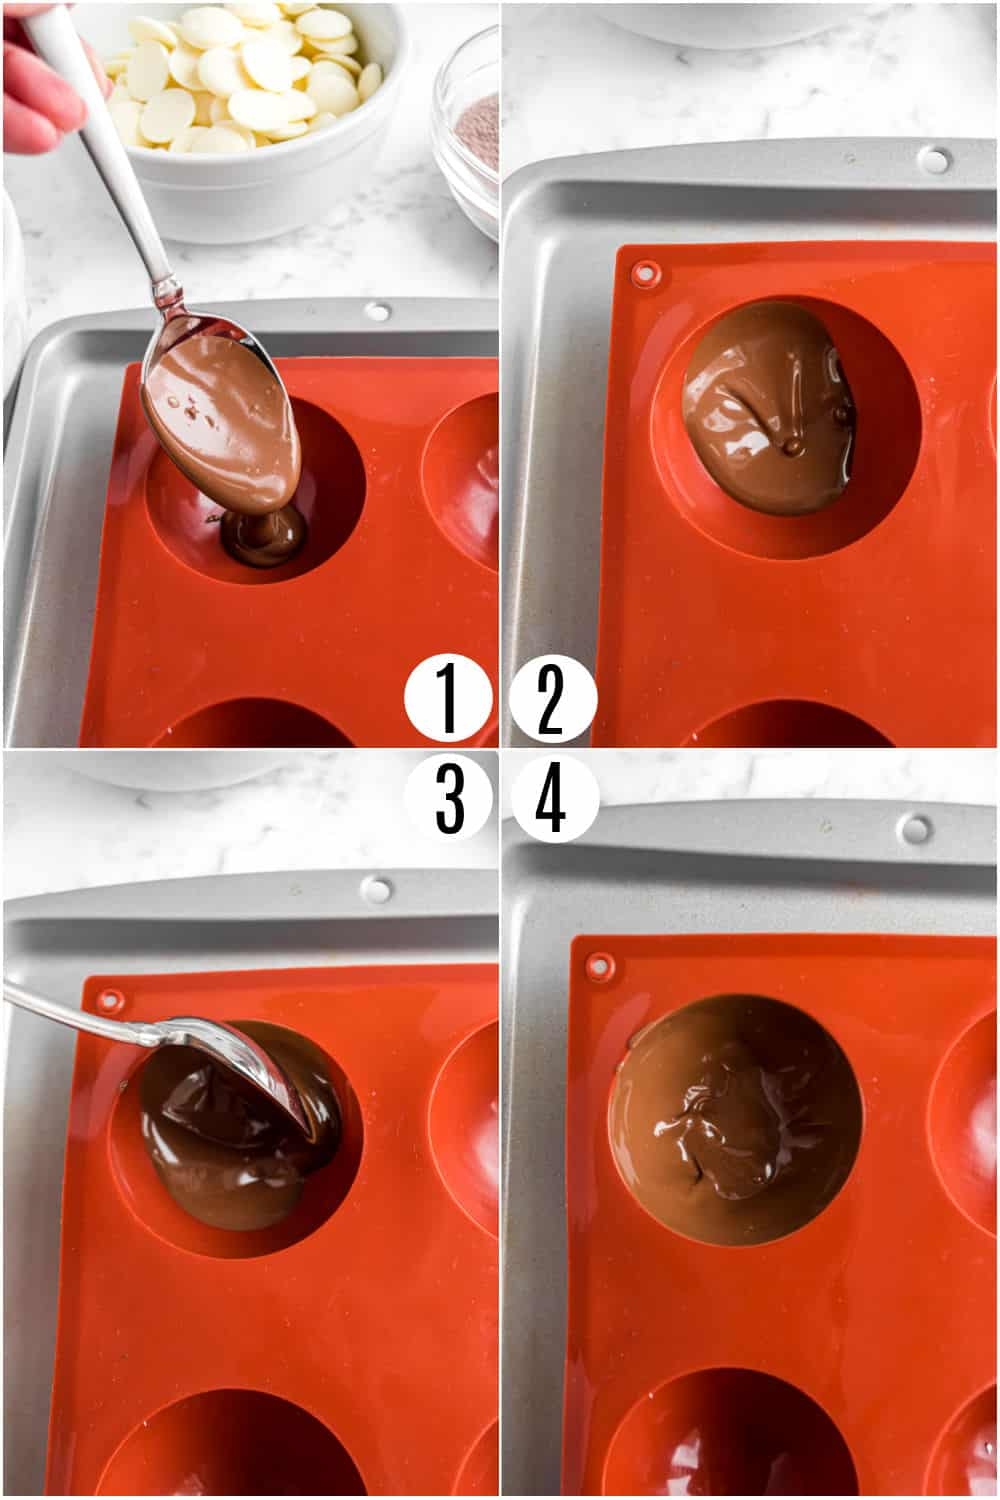 Step by step photos showing how to add melted chocolate to hot cocoa molds.